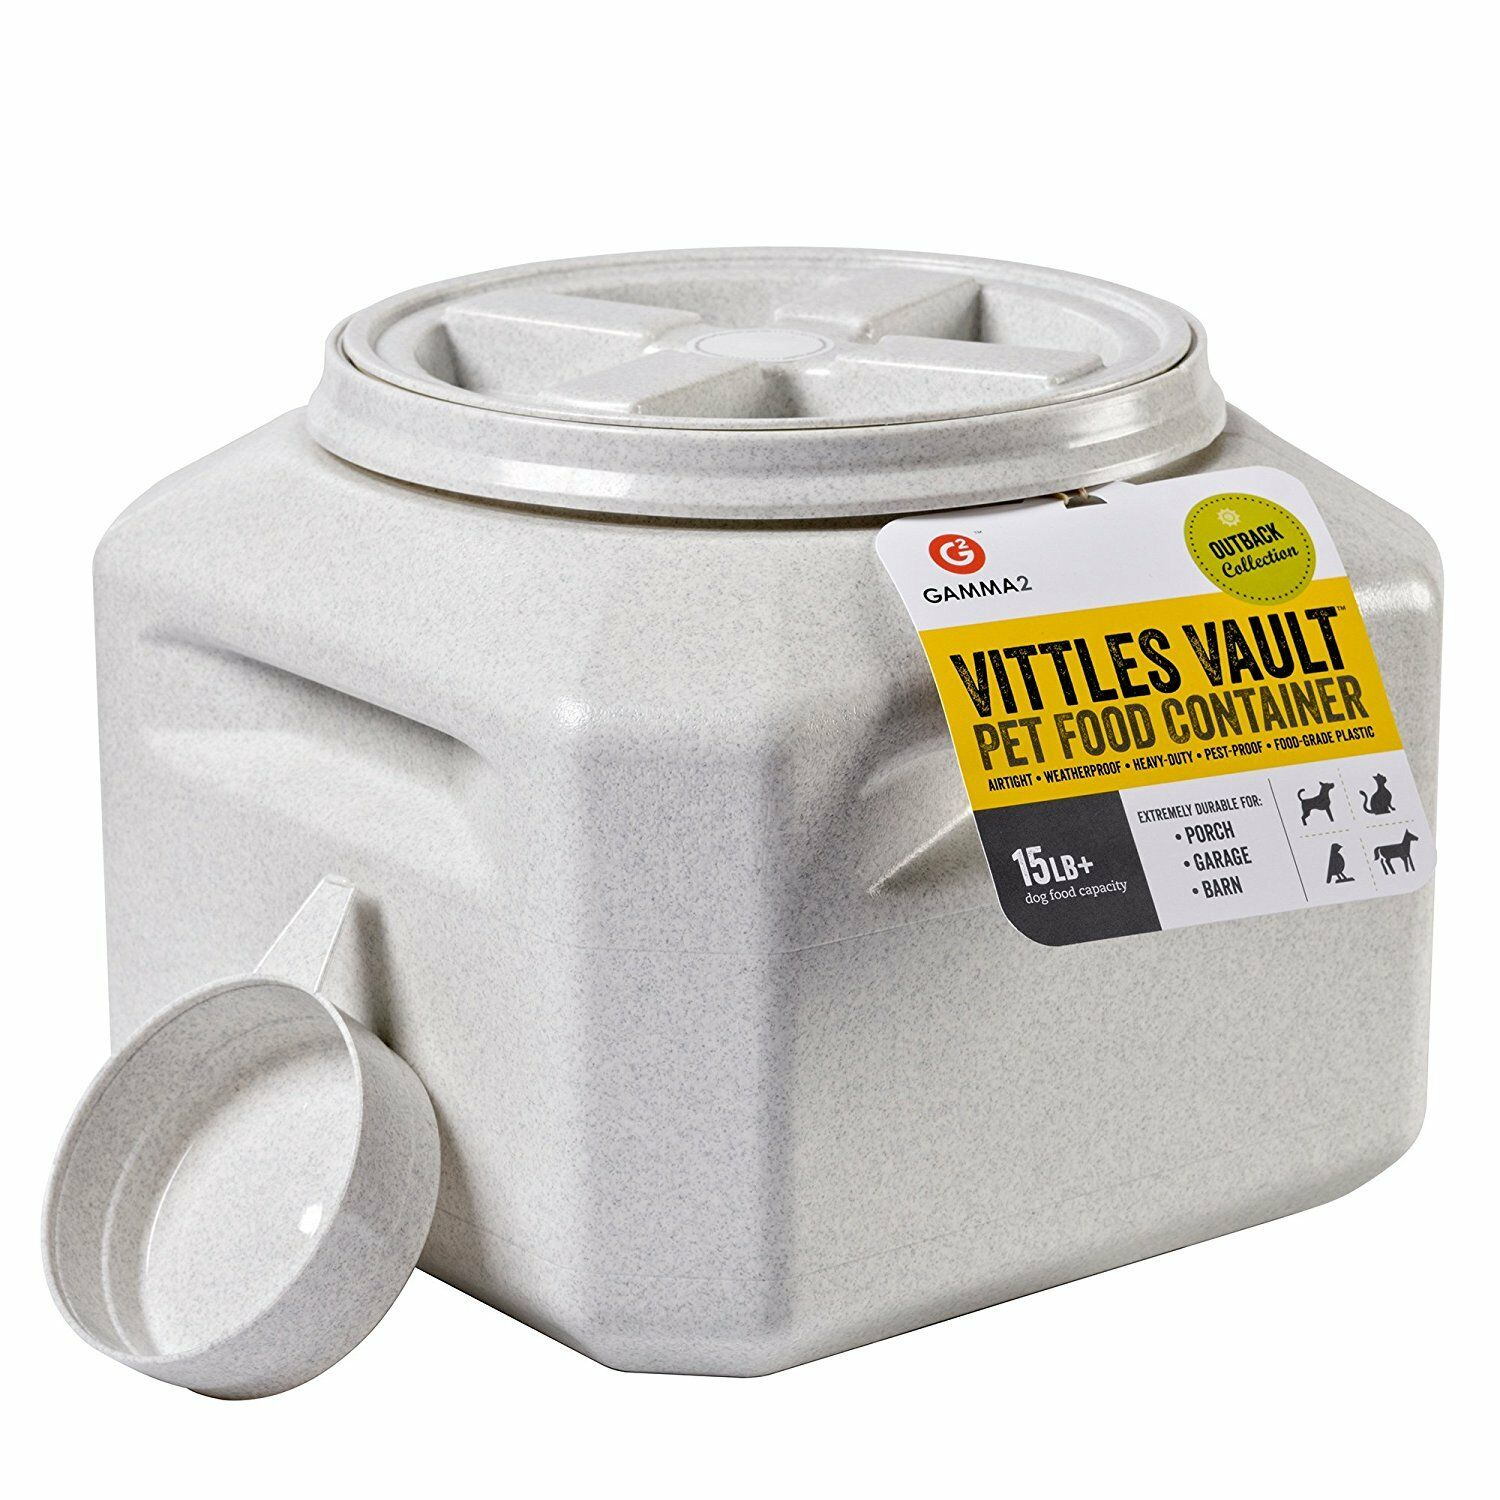 new vittles vault plus 15 lb pet